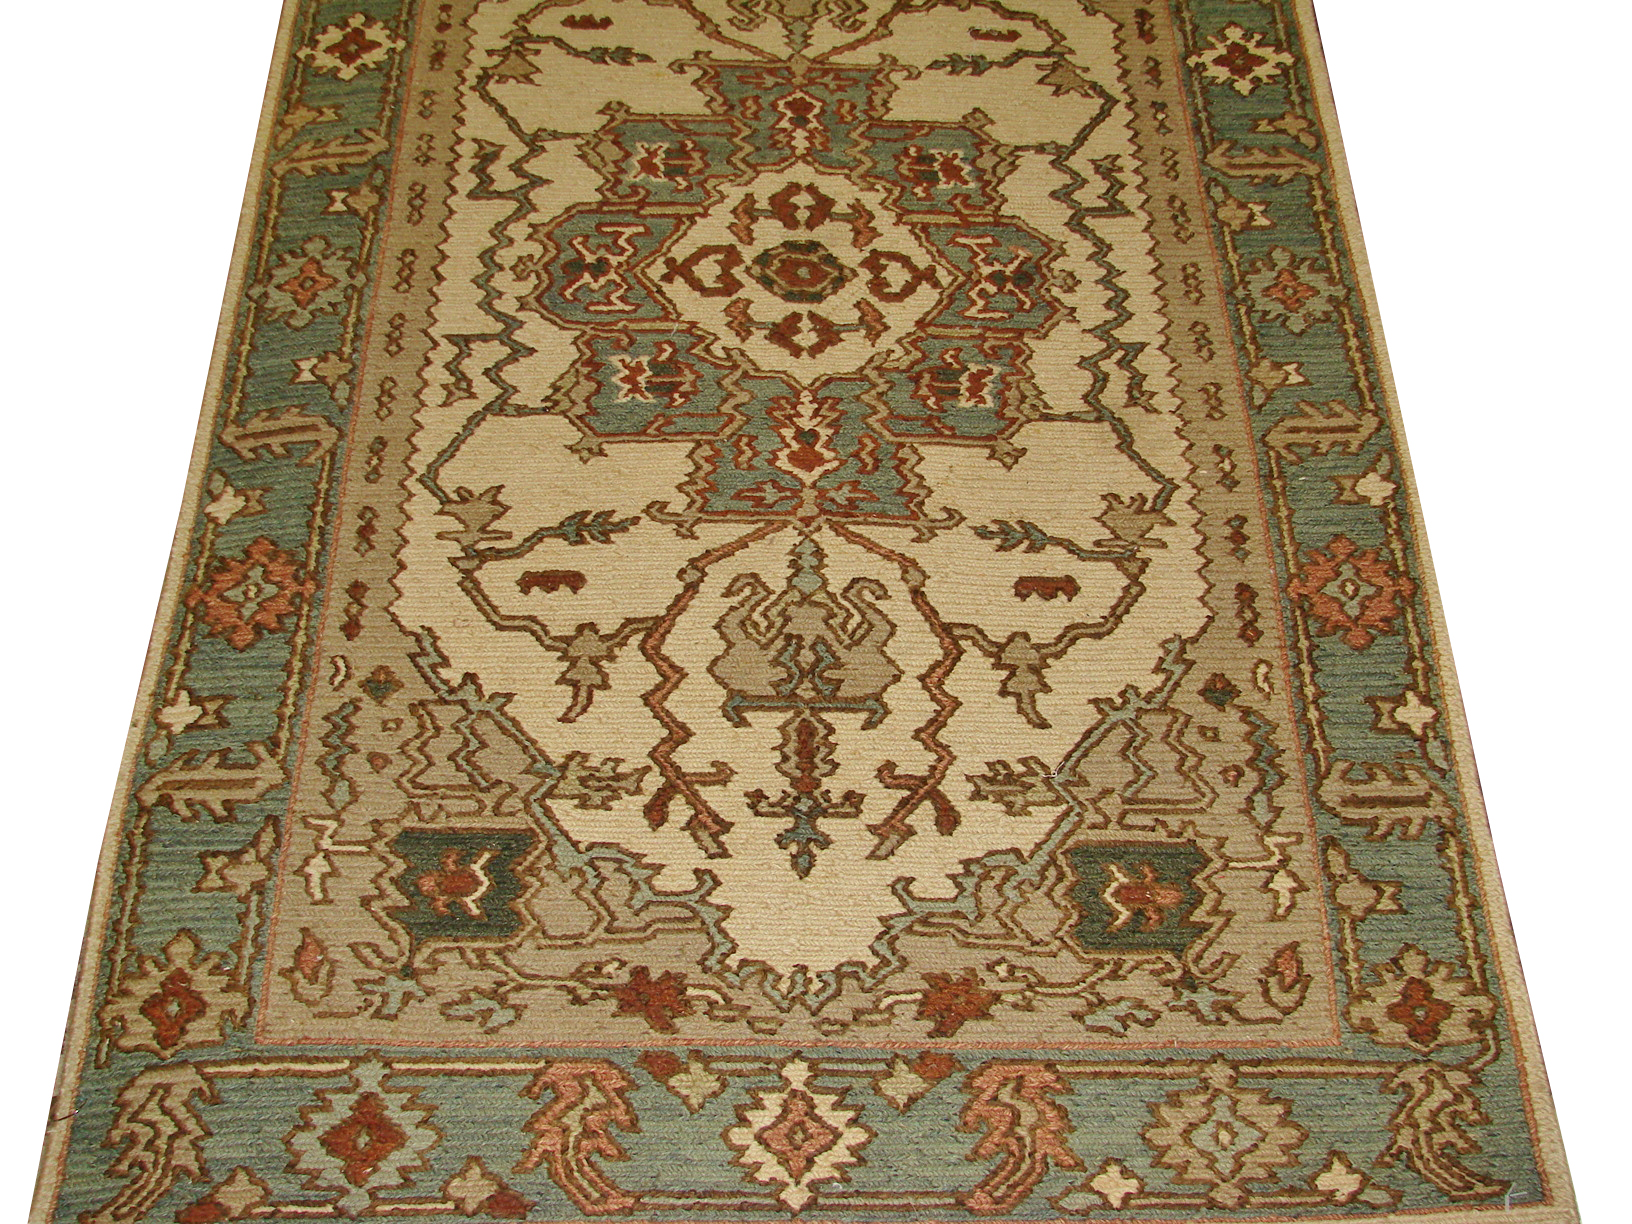 3x5 Flat Weave Hand Knotted Wool Area Rug - MR8214